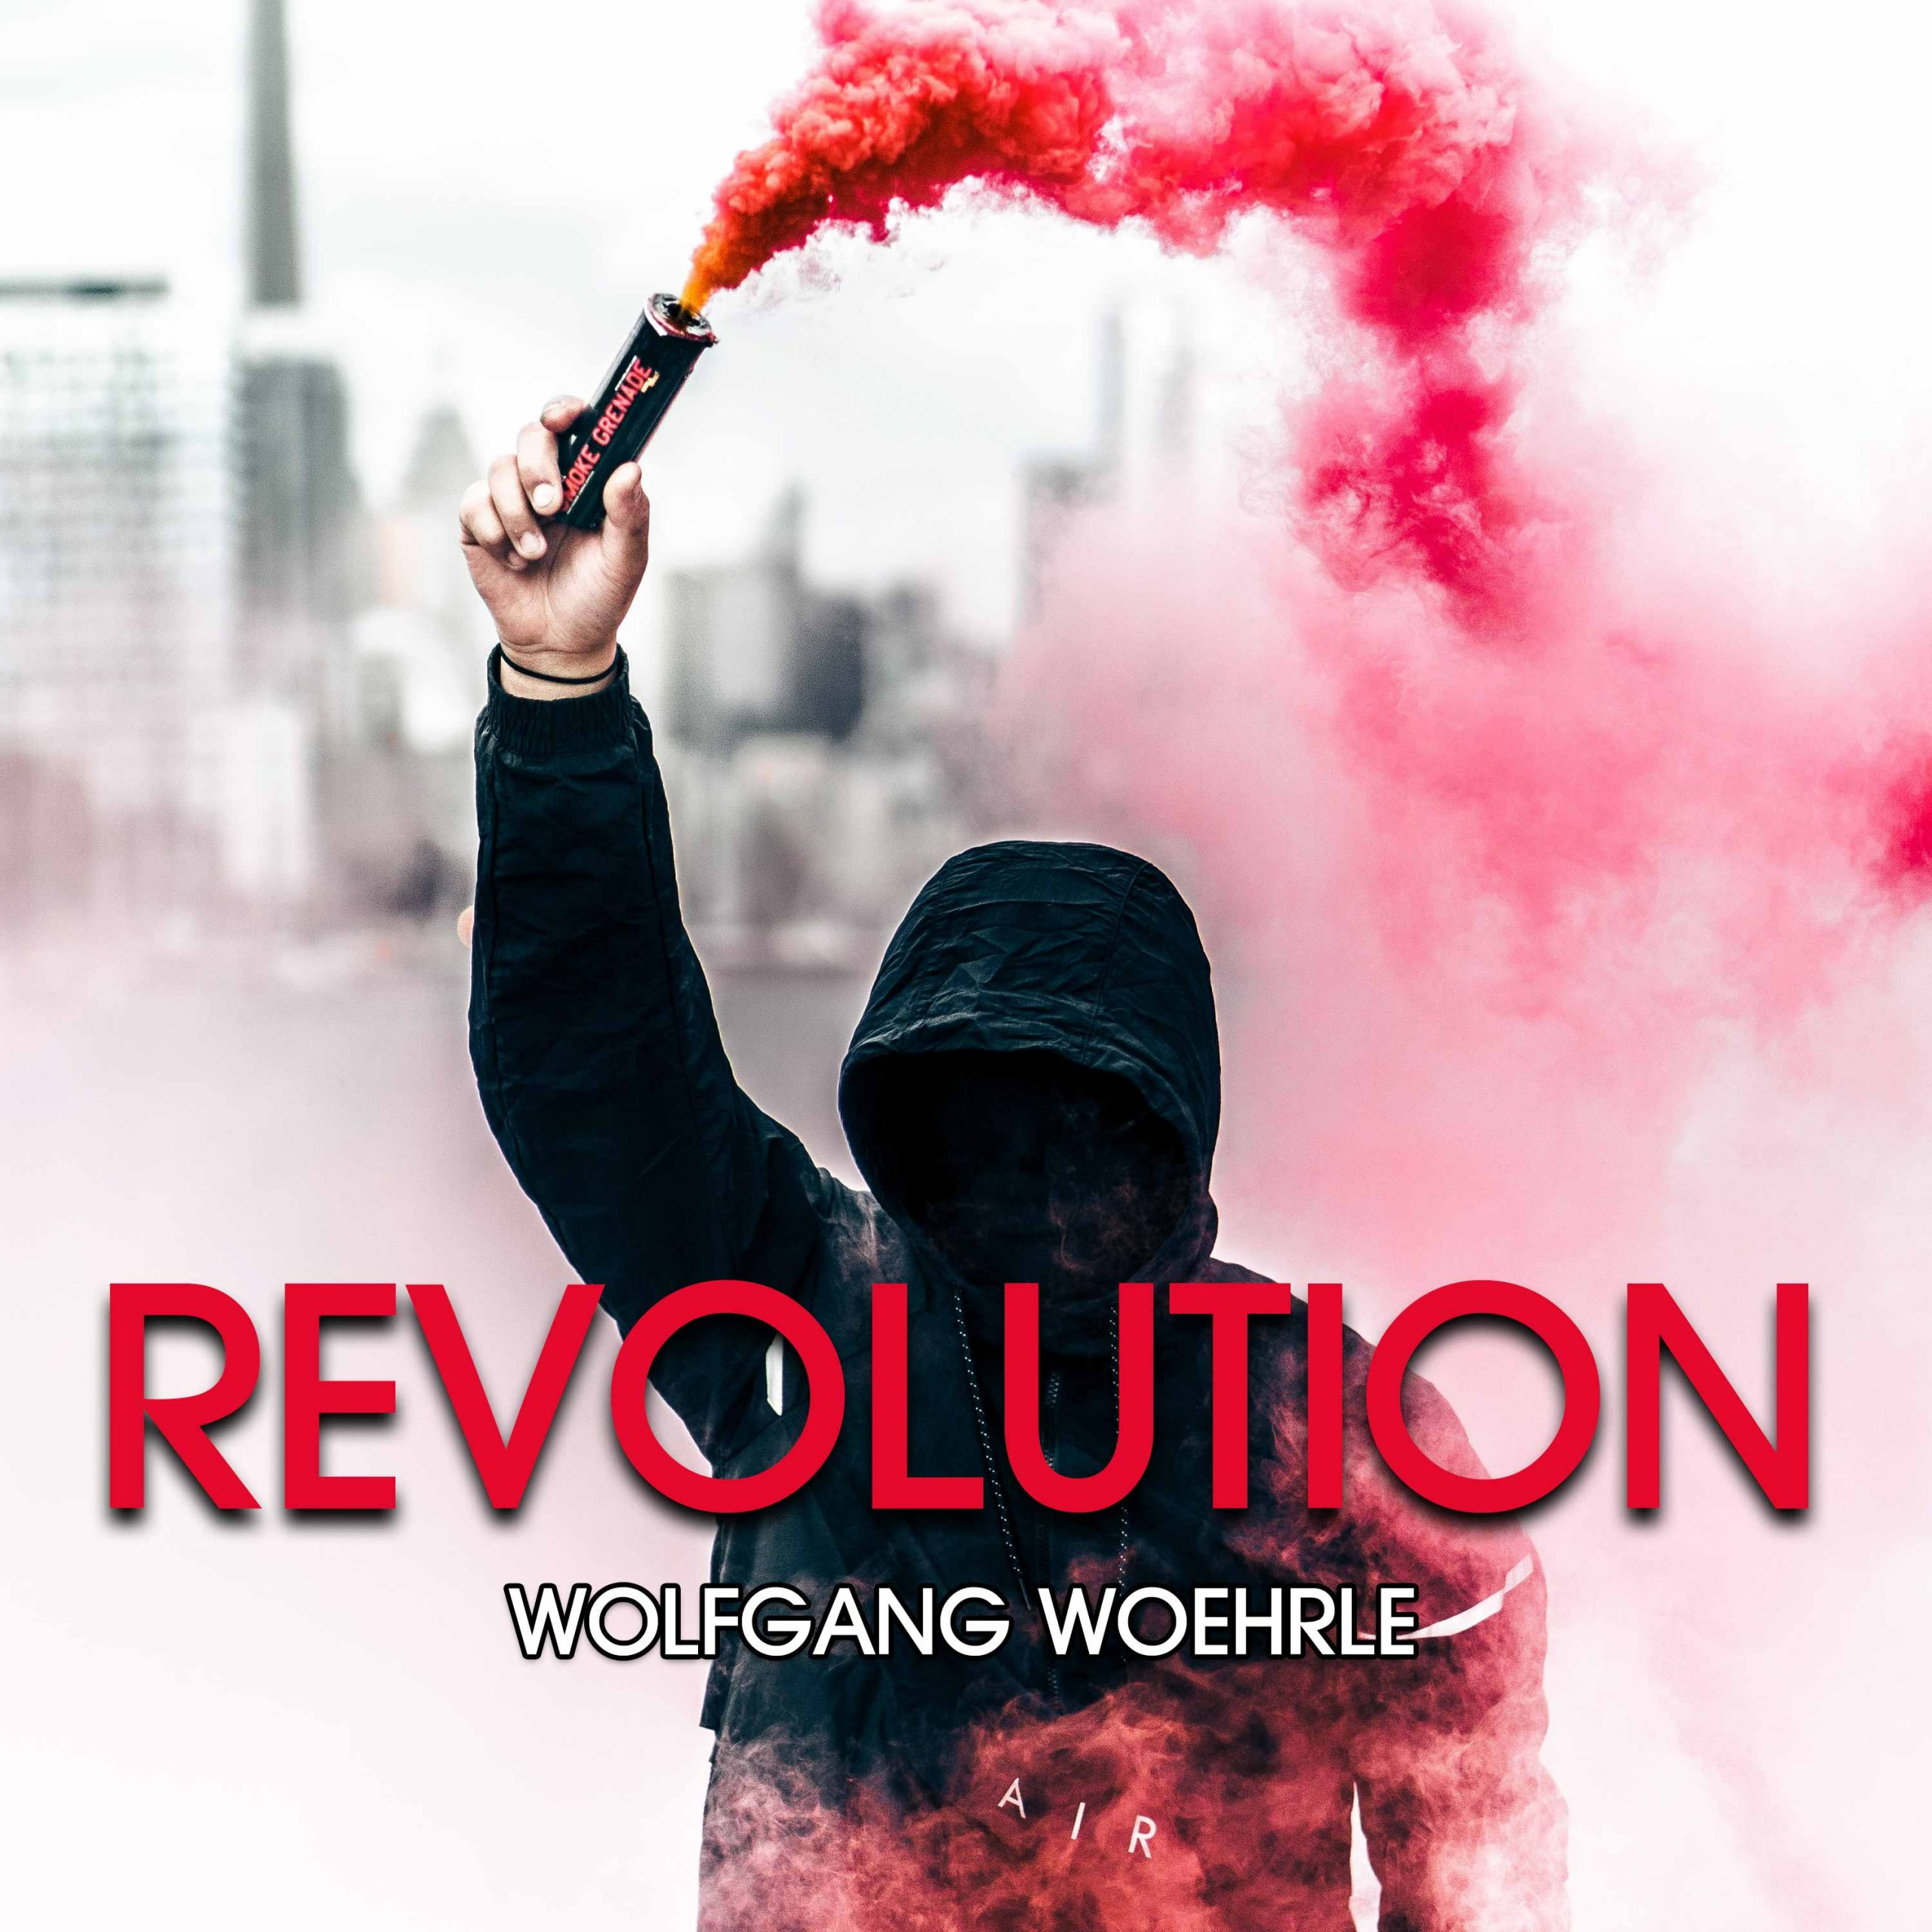 REVOLUTION by Wolfgang Woehrle